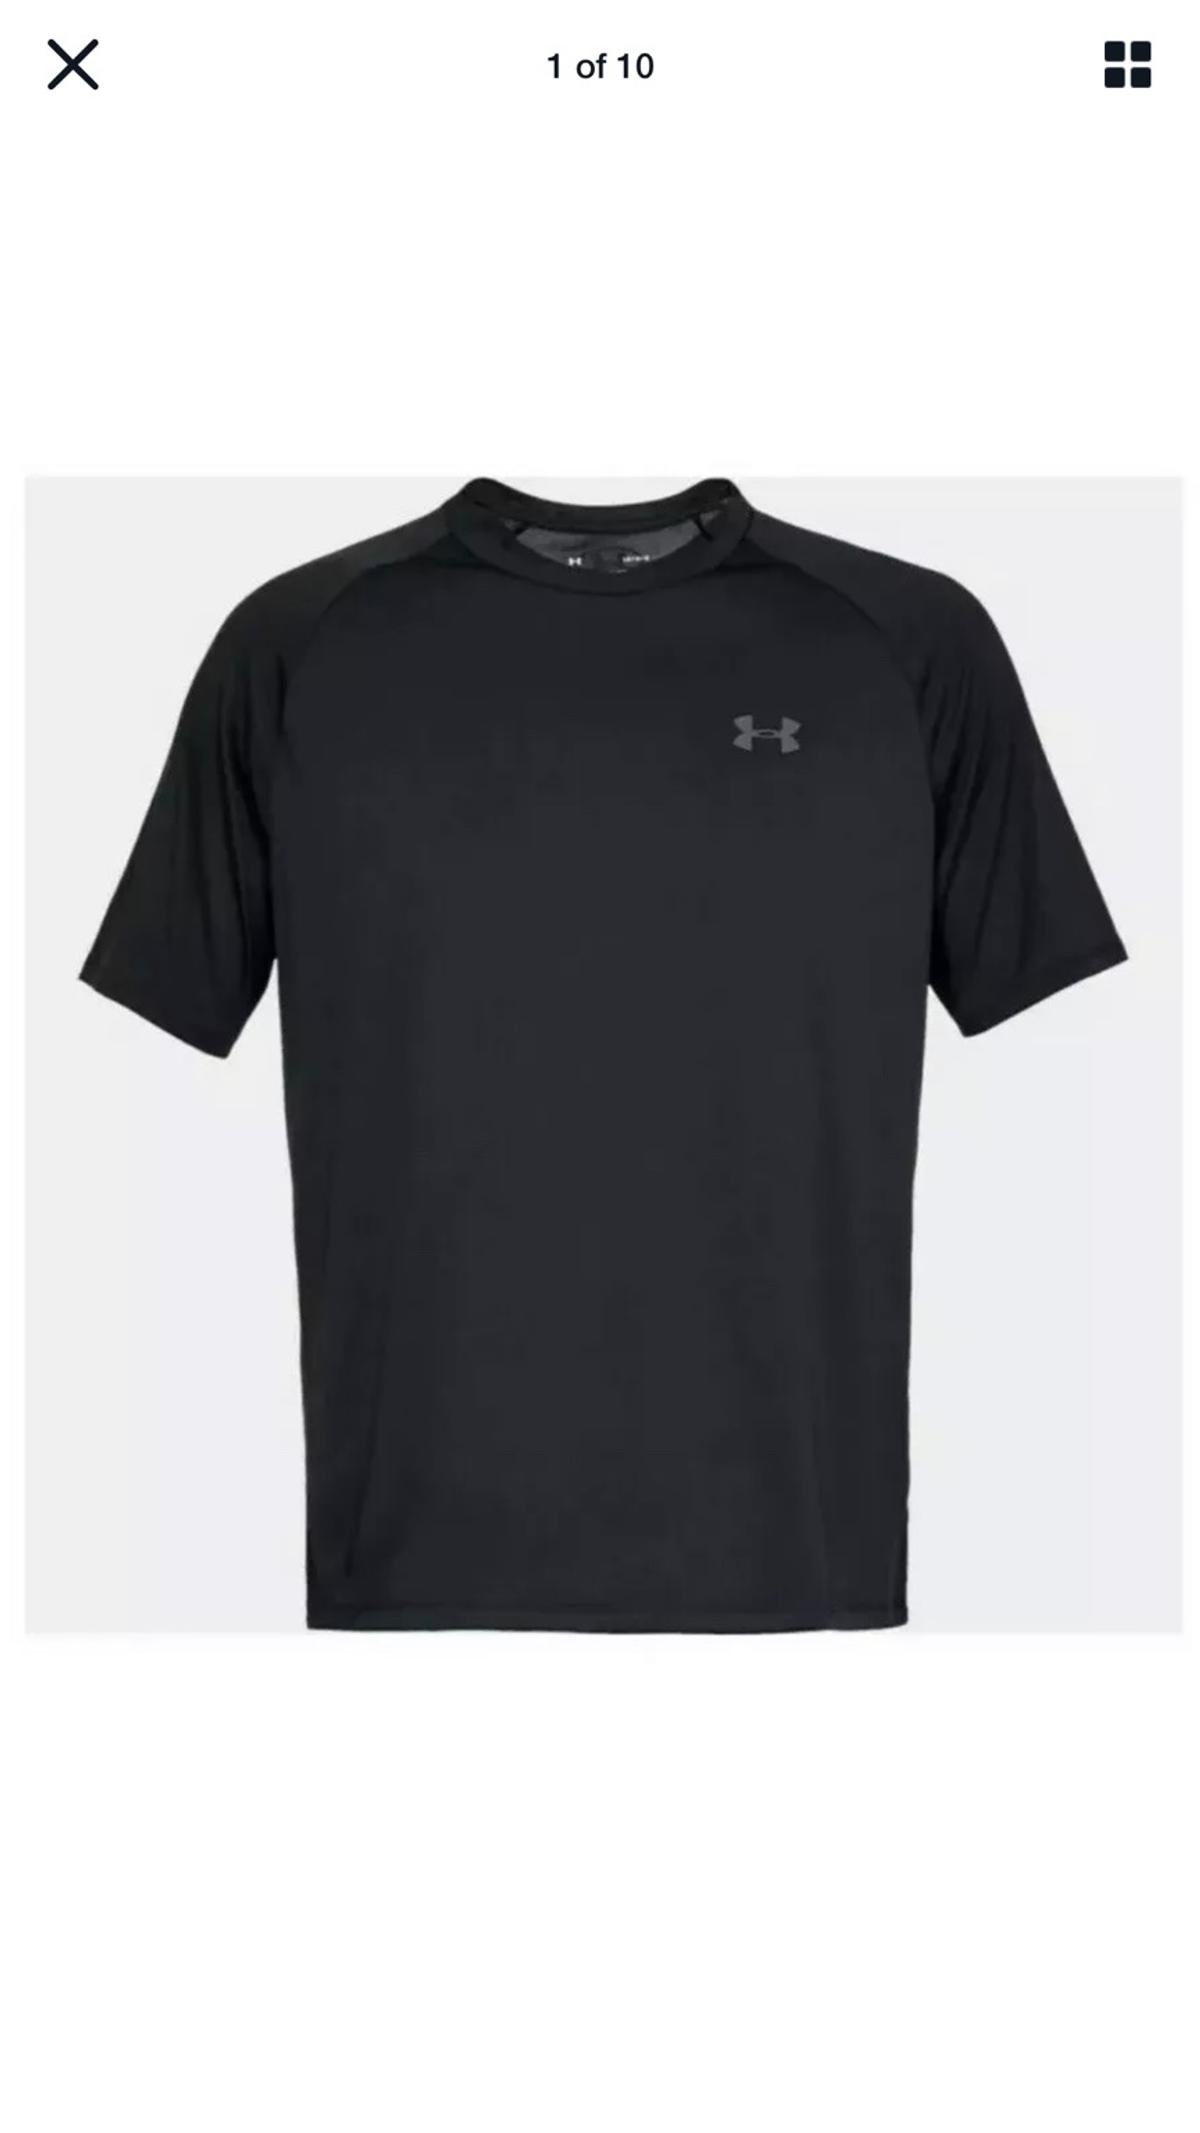 Under Armour Men UA Tech 2.0 SS Short-Sleeve T Shirts Sports Gym Size Small. Condition is New with tags.